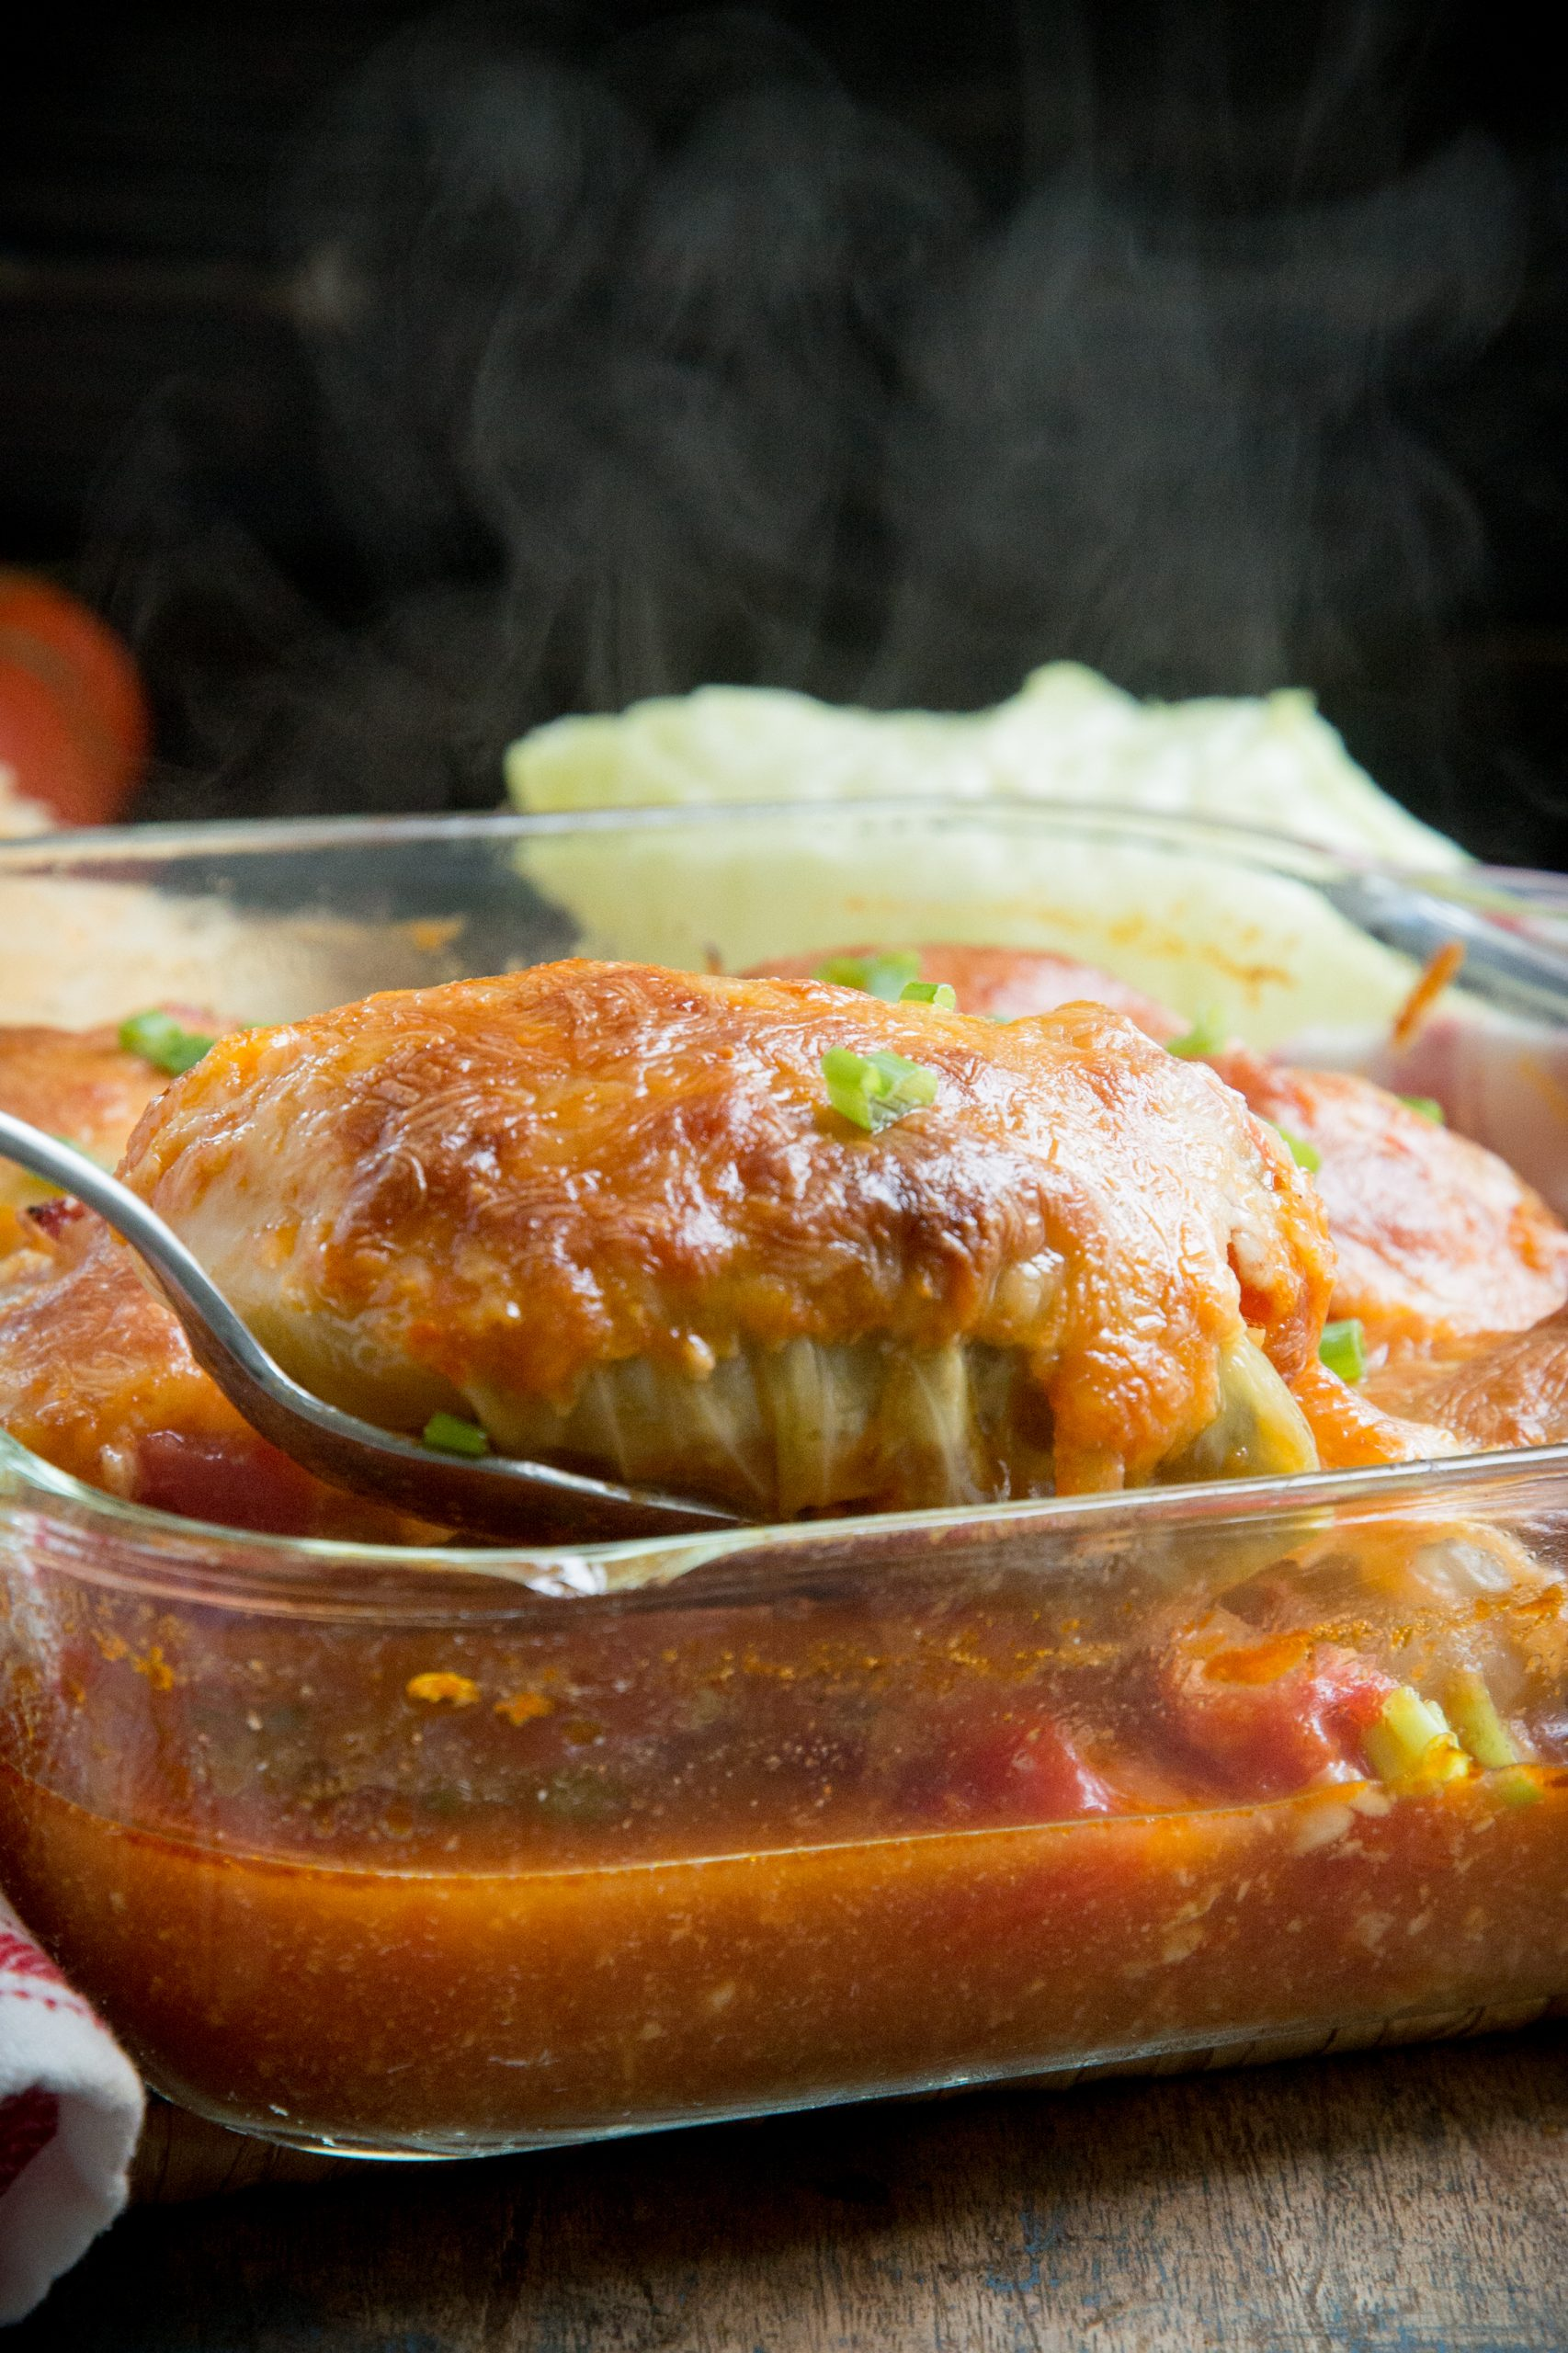 Lifting a cabbage roll from the baking dish.